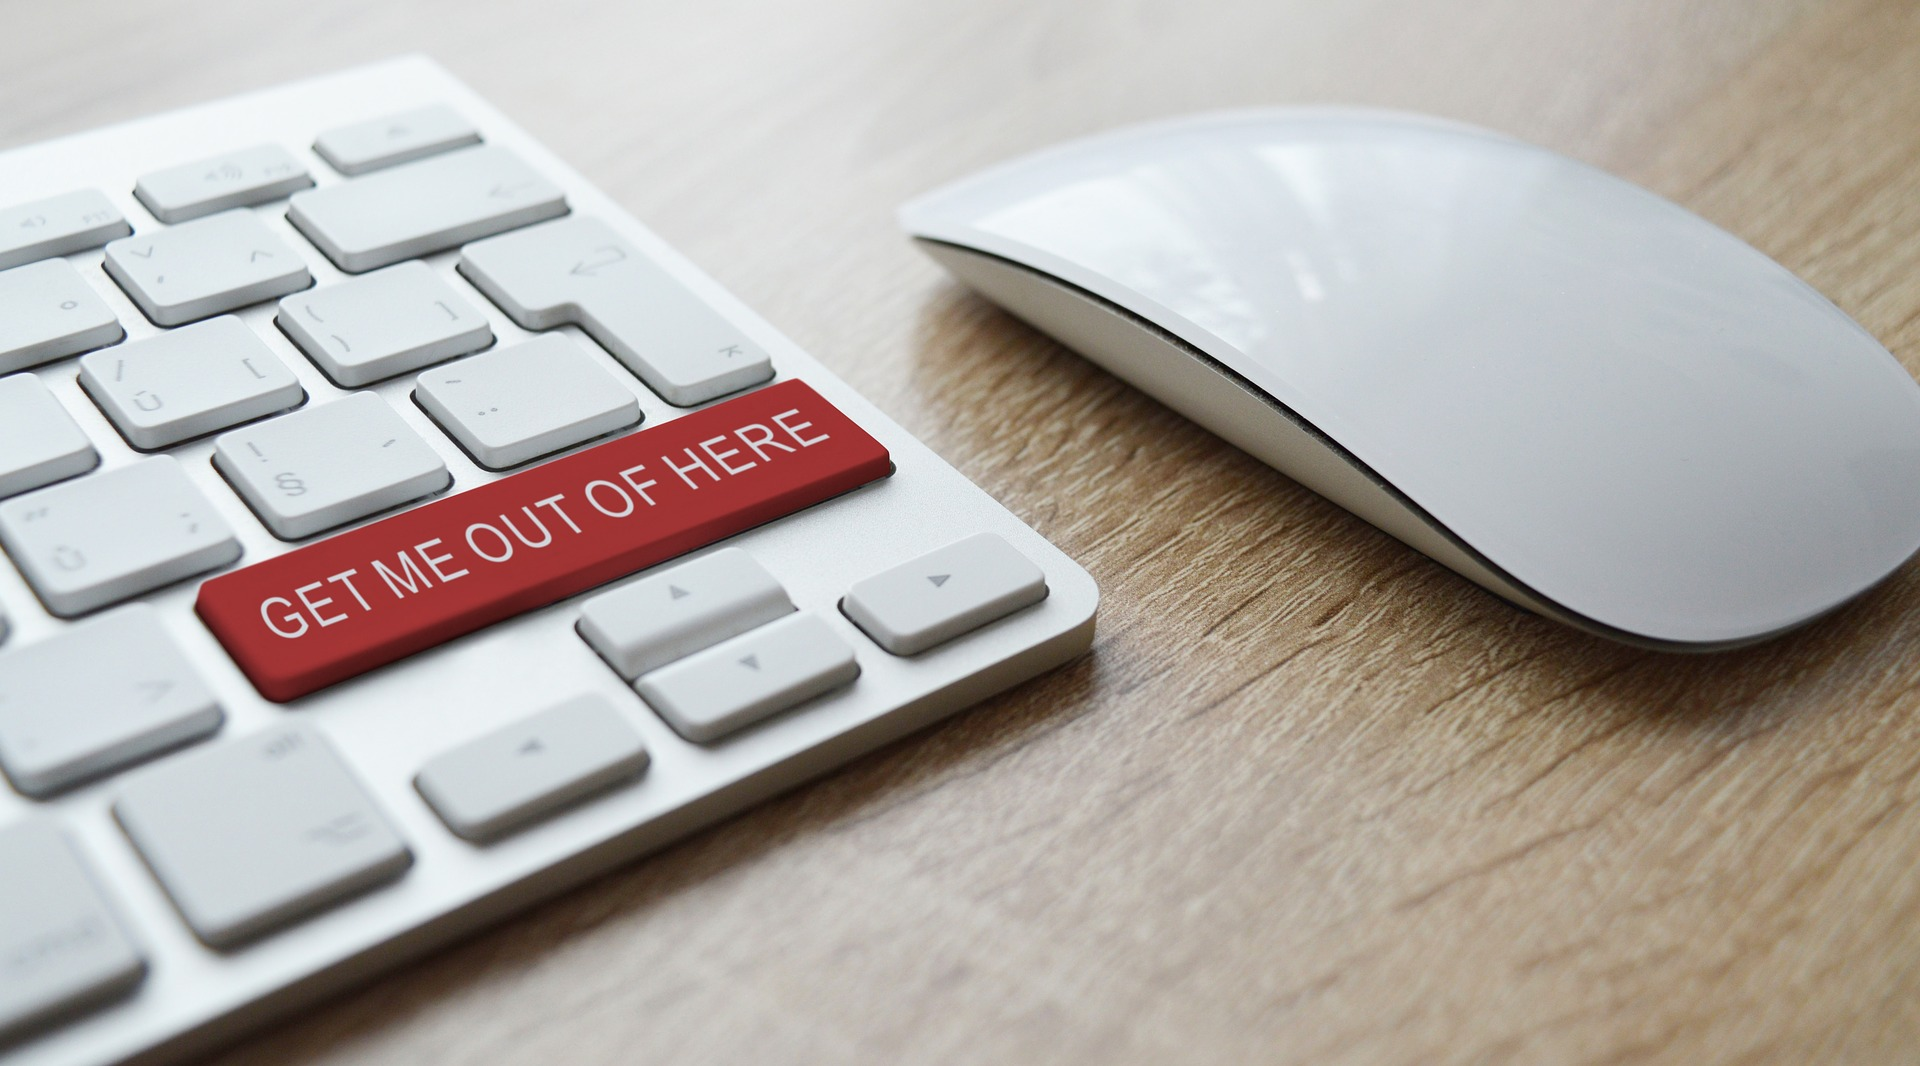 Keyboard with Get me out of here key in red